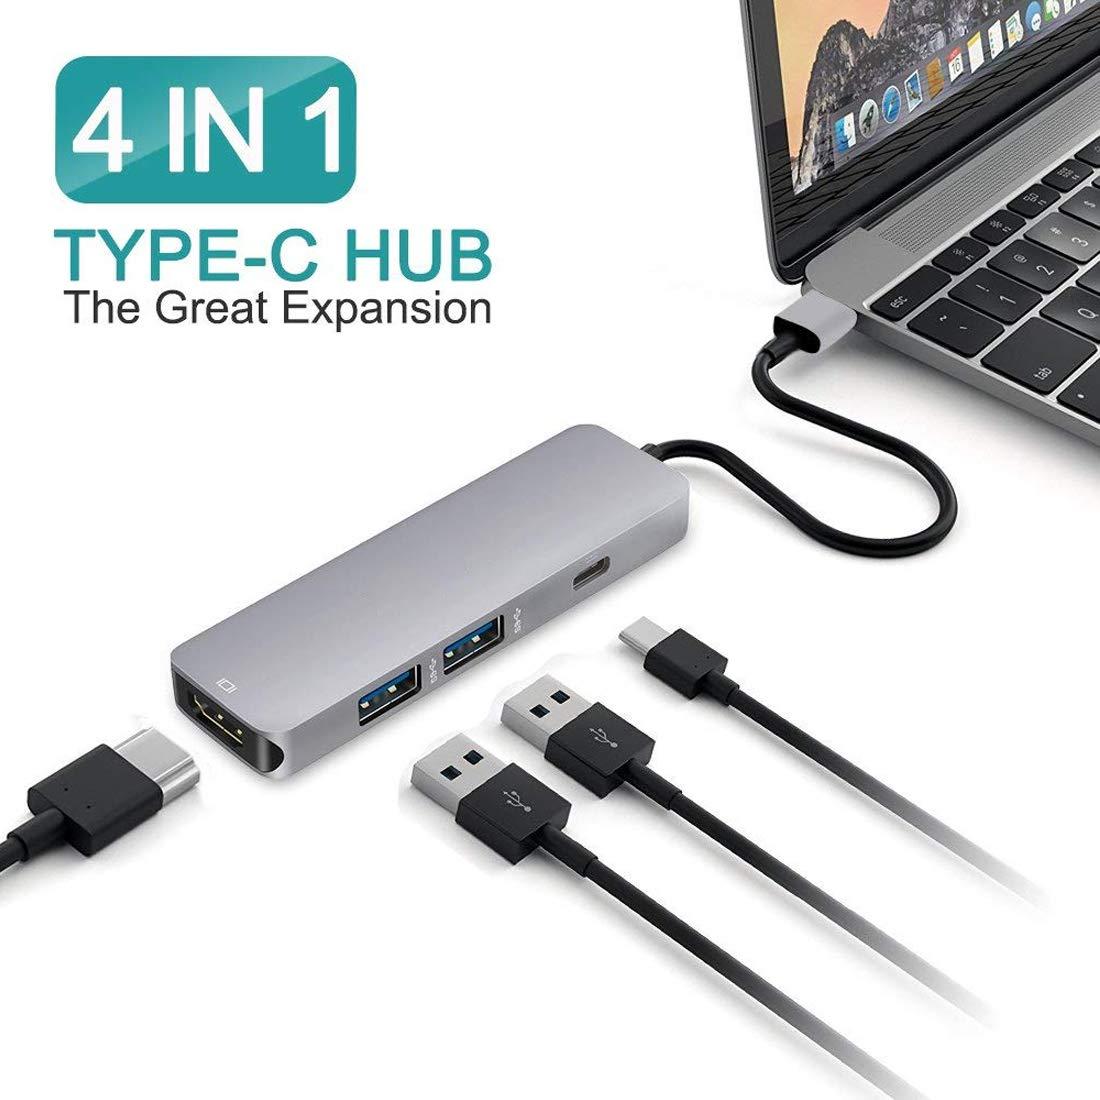 STYLETECK USB C to HDMI Adapter, Type C Hub with 4K, 2 USB 3.0 and PD Charging Ports Compatible with Apple iMac, MacBook Pro, Nintendo Switch, Lenovo, Laptop, Samsung S8 S9 Plus Smartphones and More